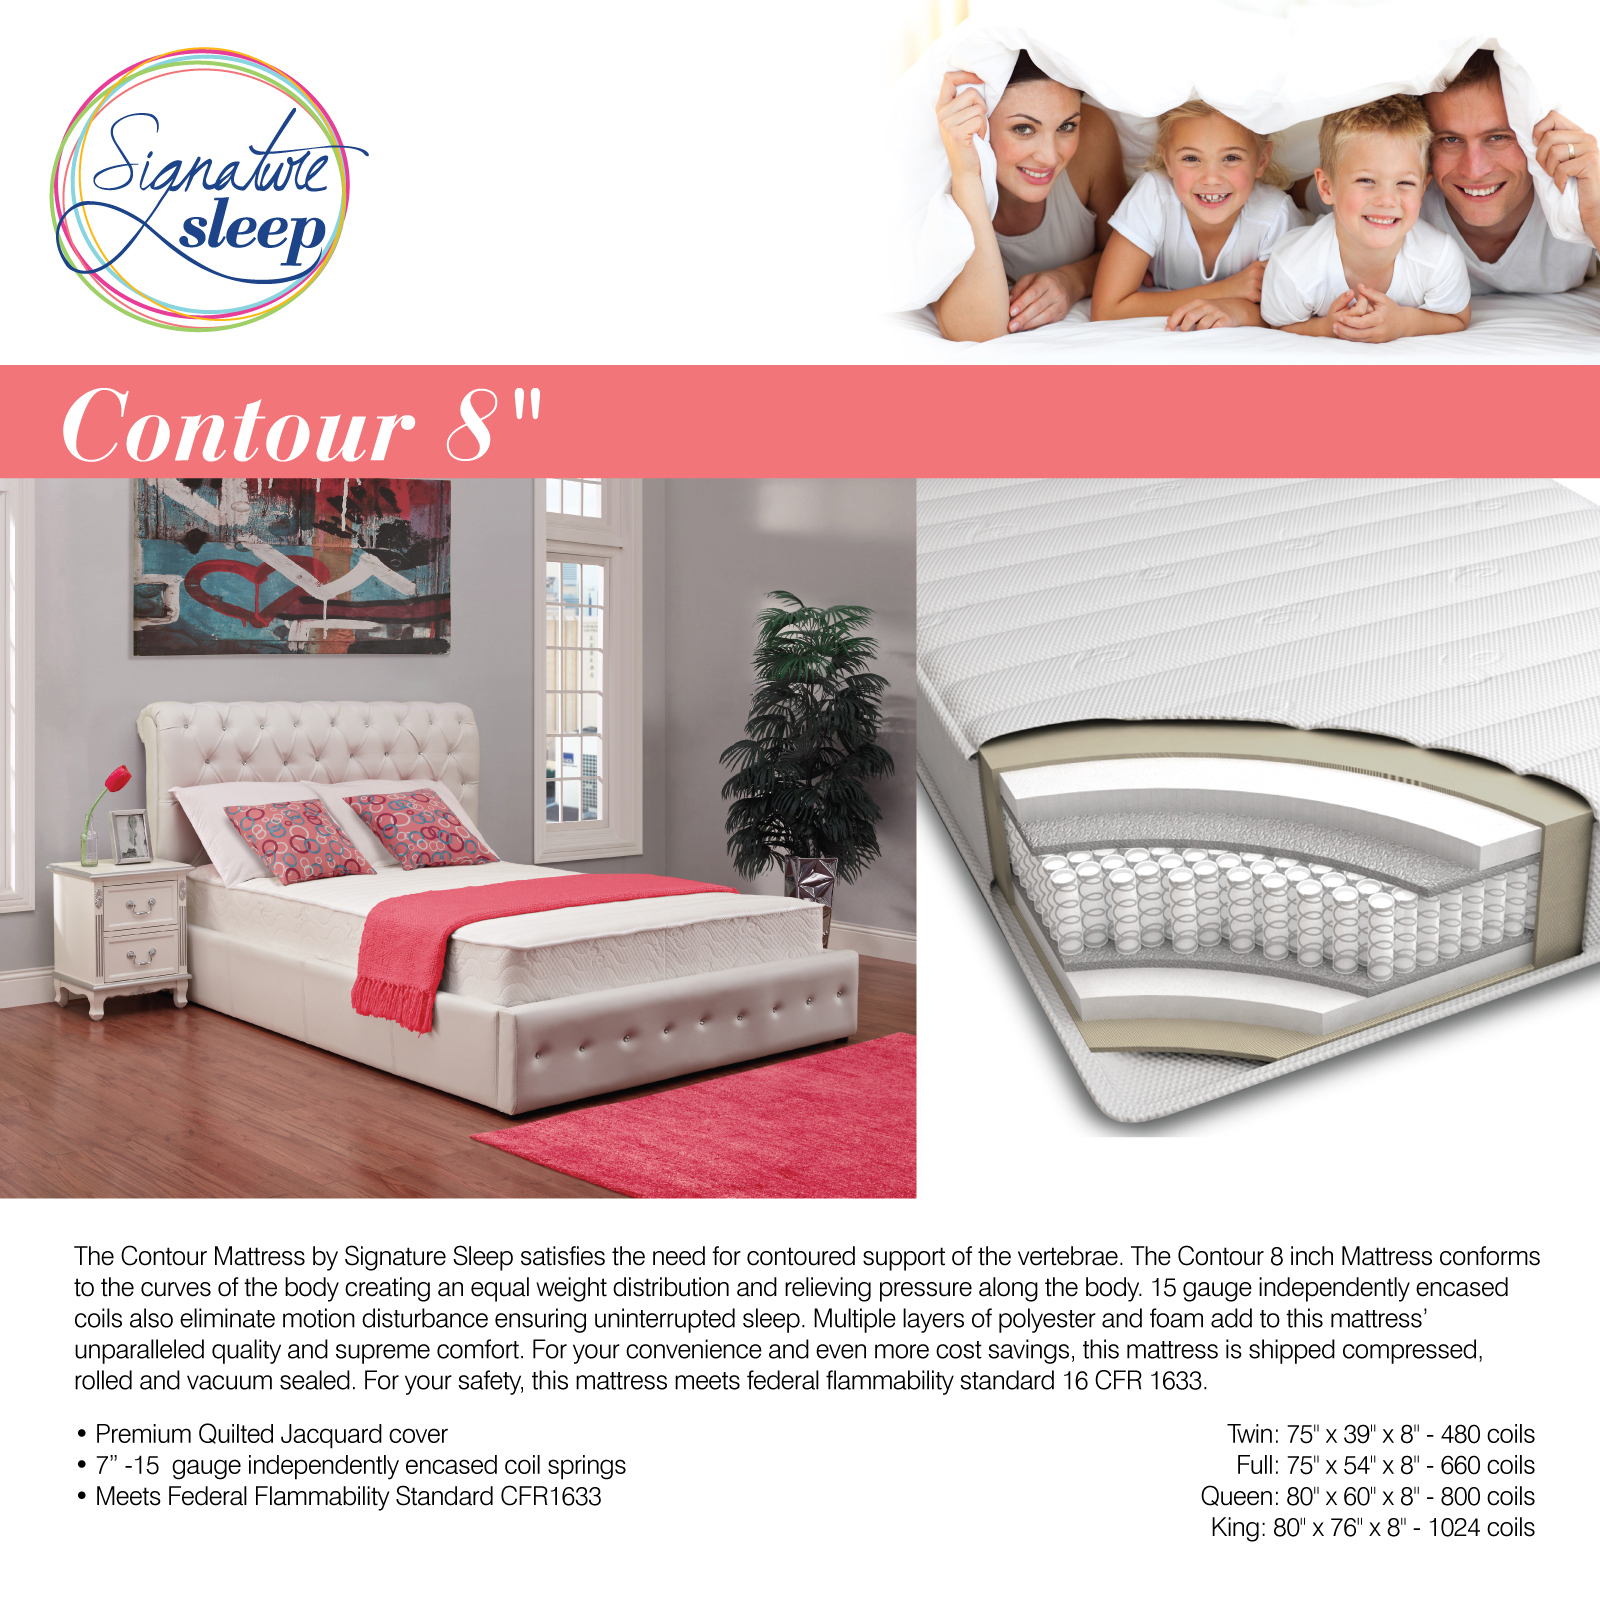 d75b7b506f5e ... Signature-Sleep-Contour-8-Inch-Mattress-for your family